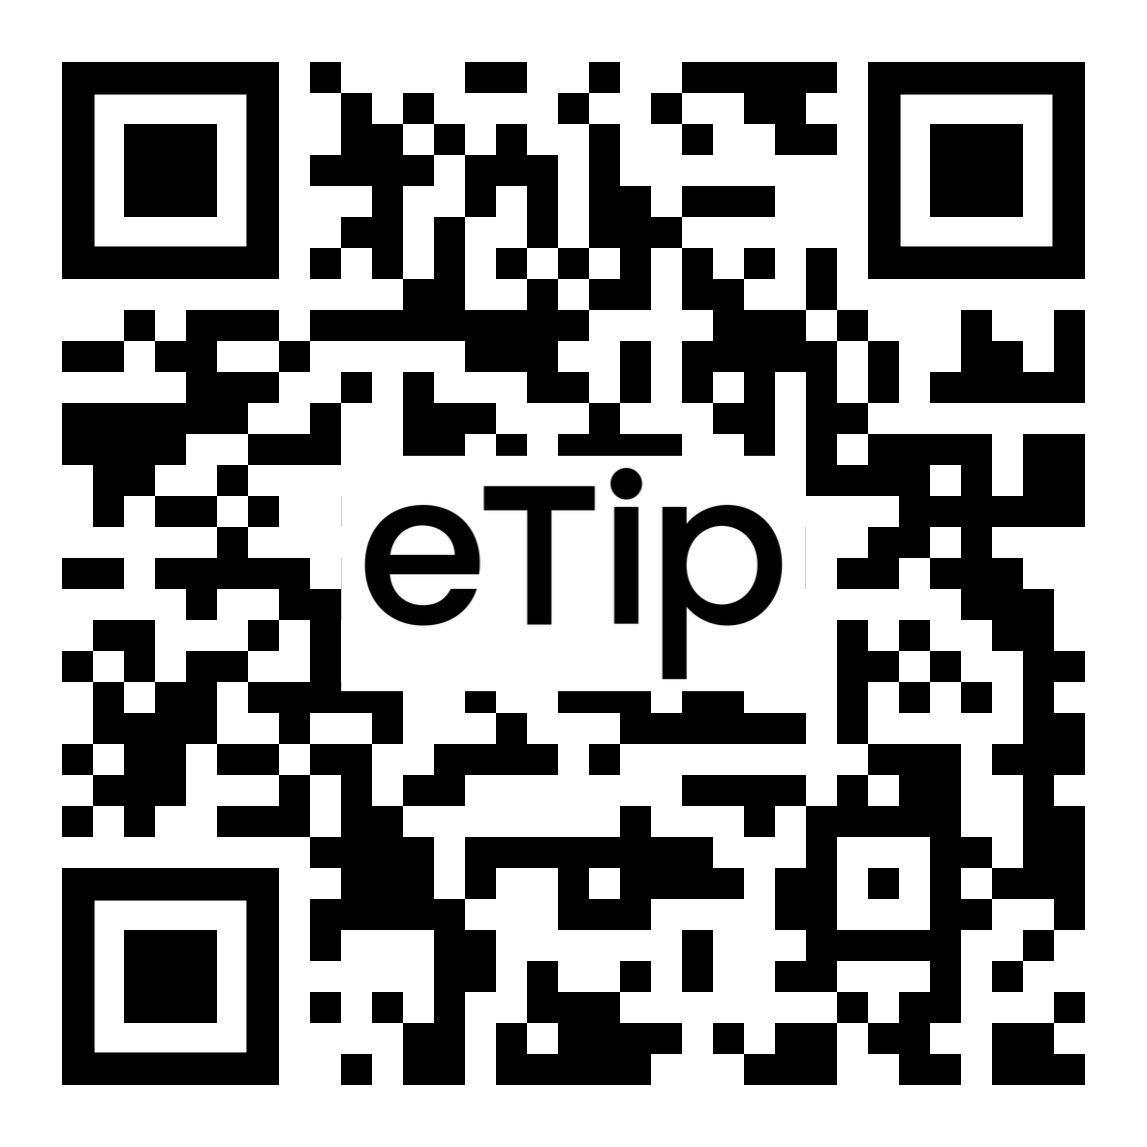 Feed The Line QR Code